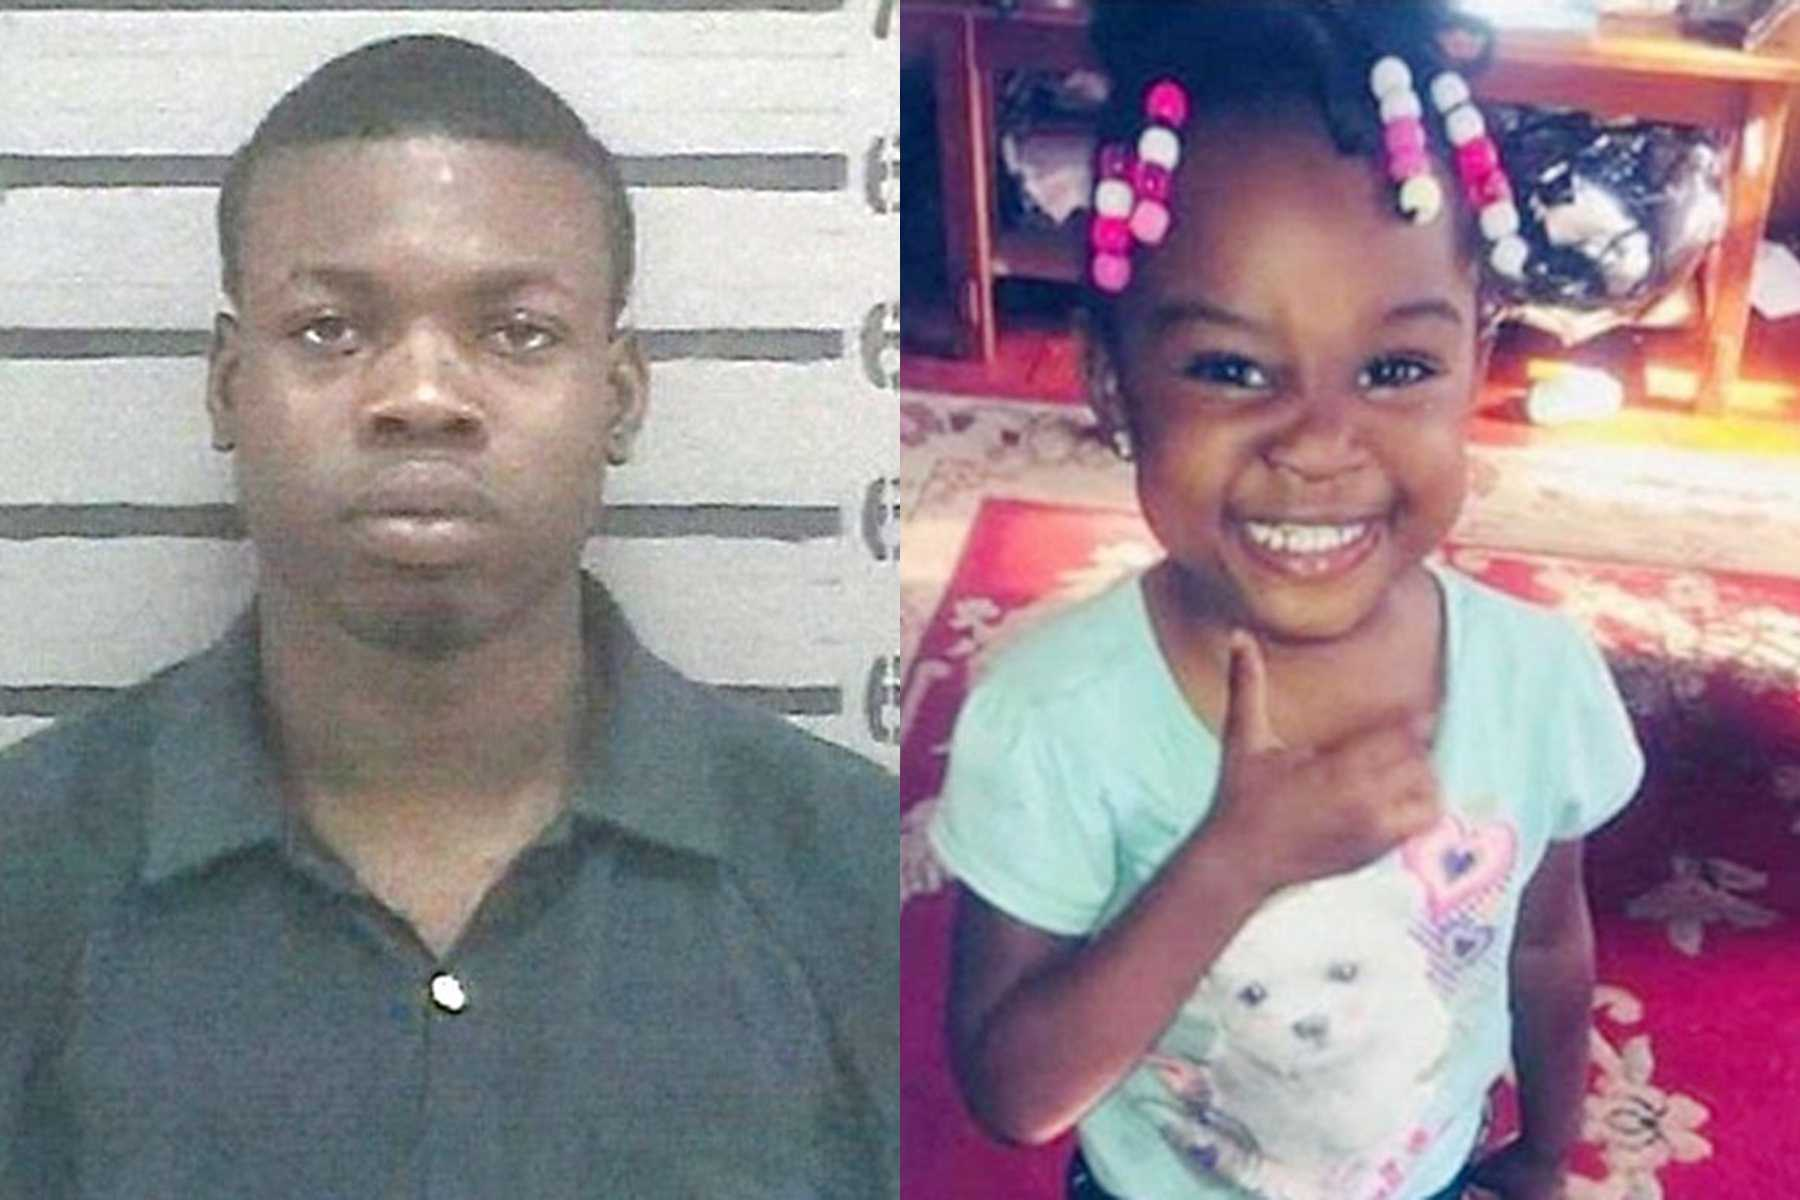 Gregory Parker has been charged with committing a string of sicking crimes against his stepdaughter